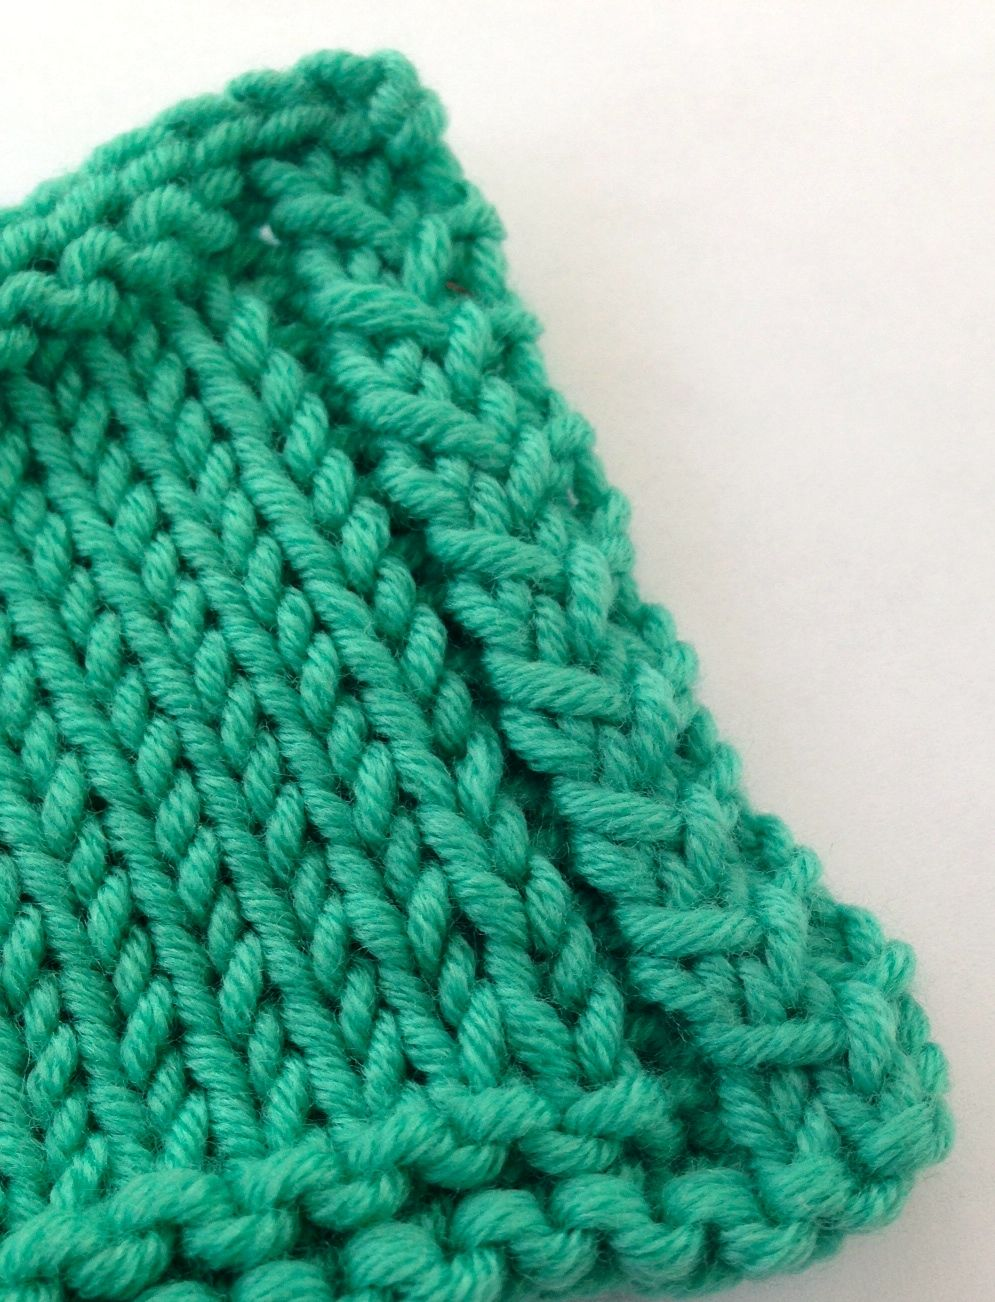 Alternative To Garter Stitch To Prevent Stockinette From Rolling